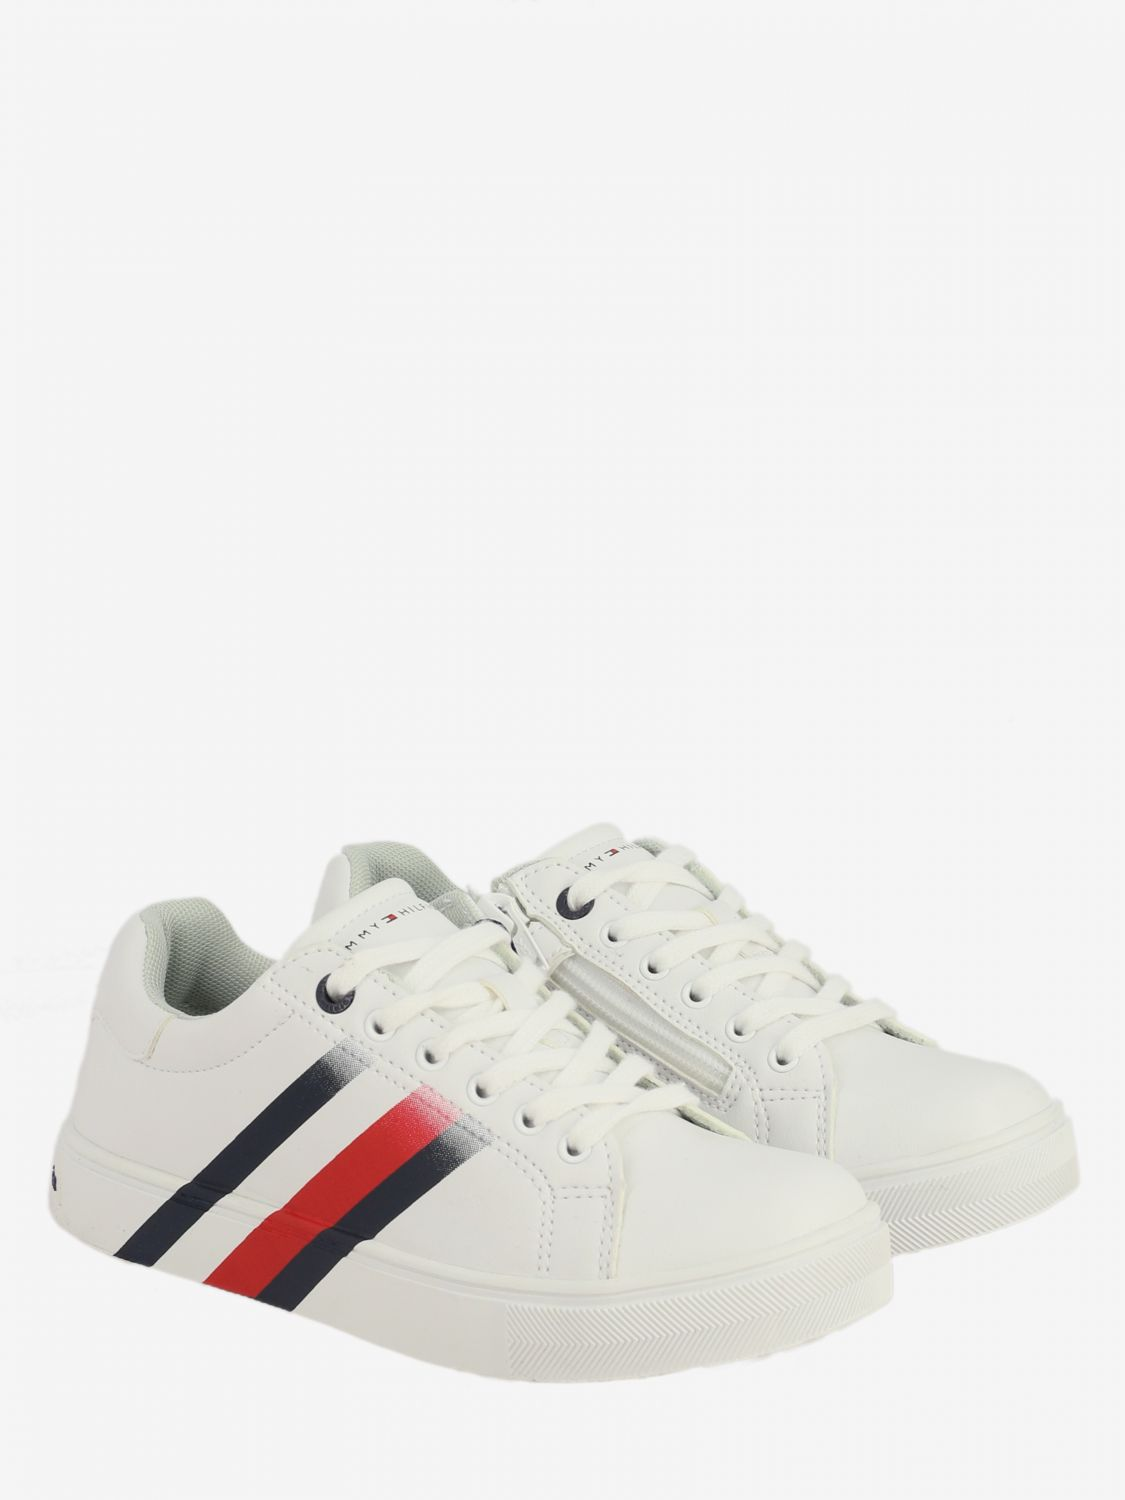 Shoes kids Tommy Hilfiger | Shoes Tommy